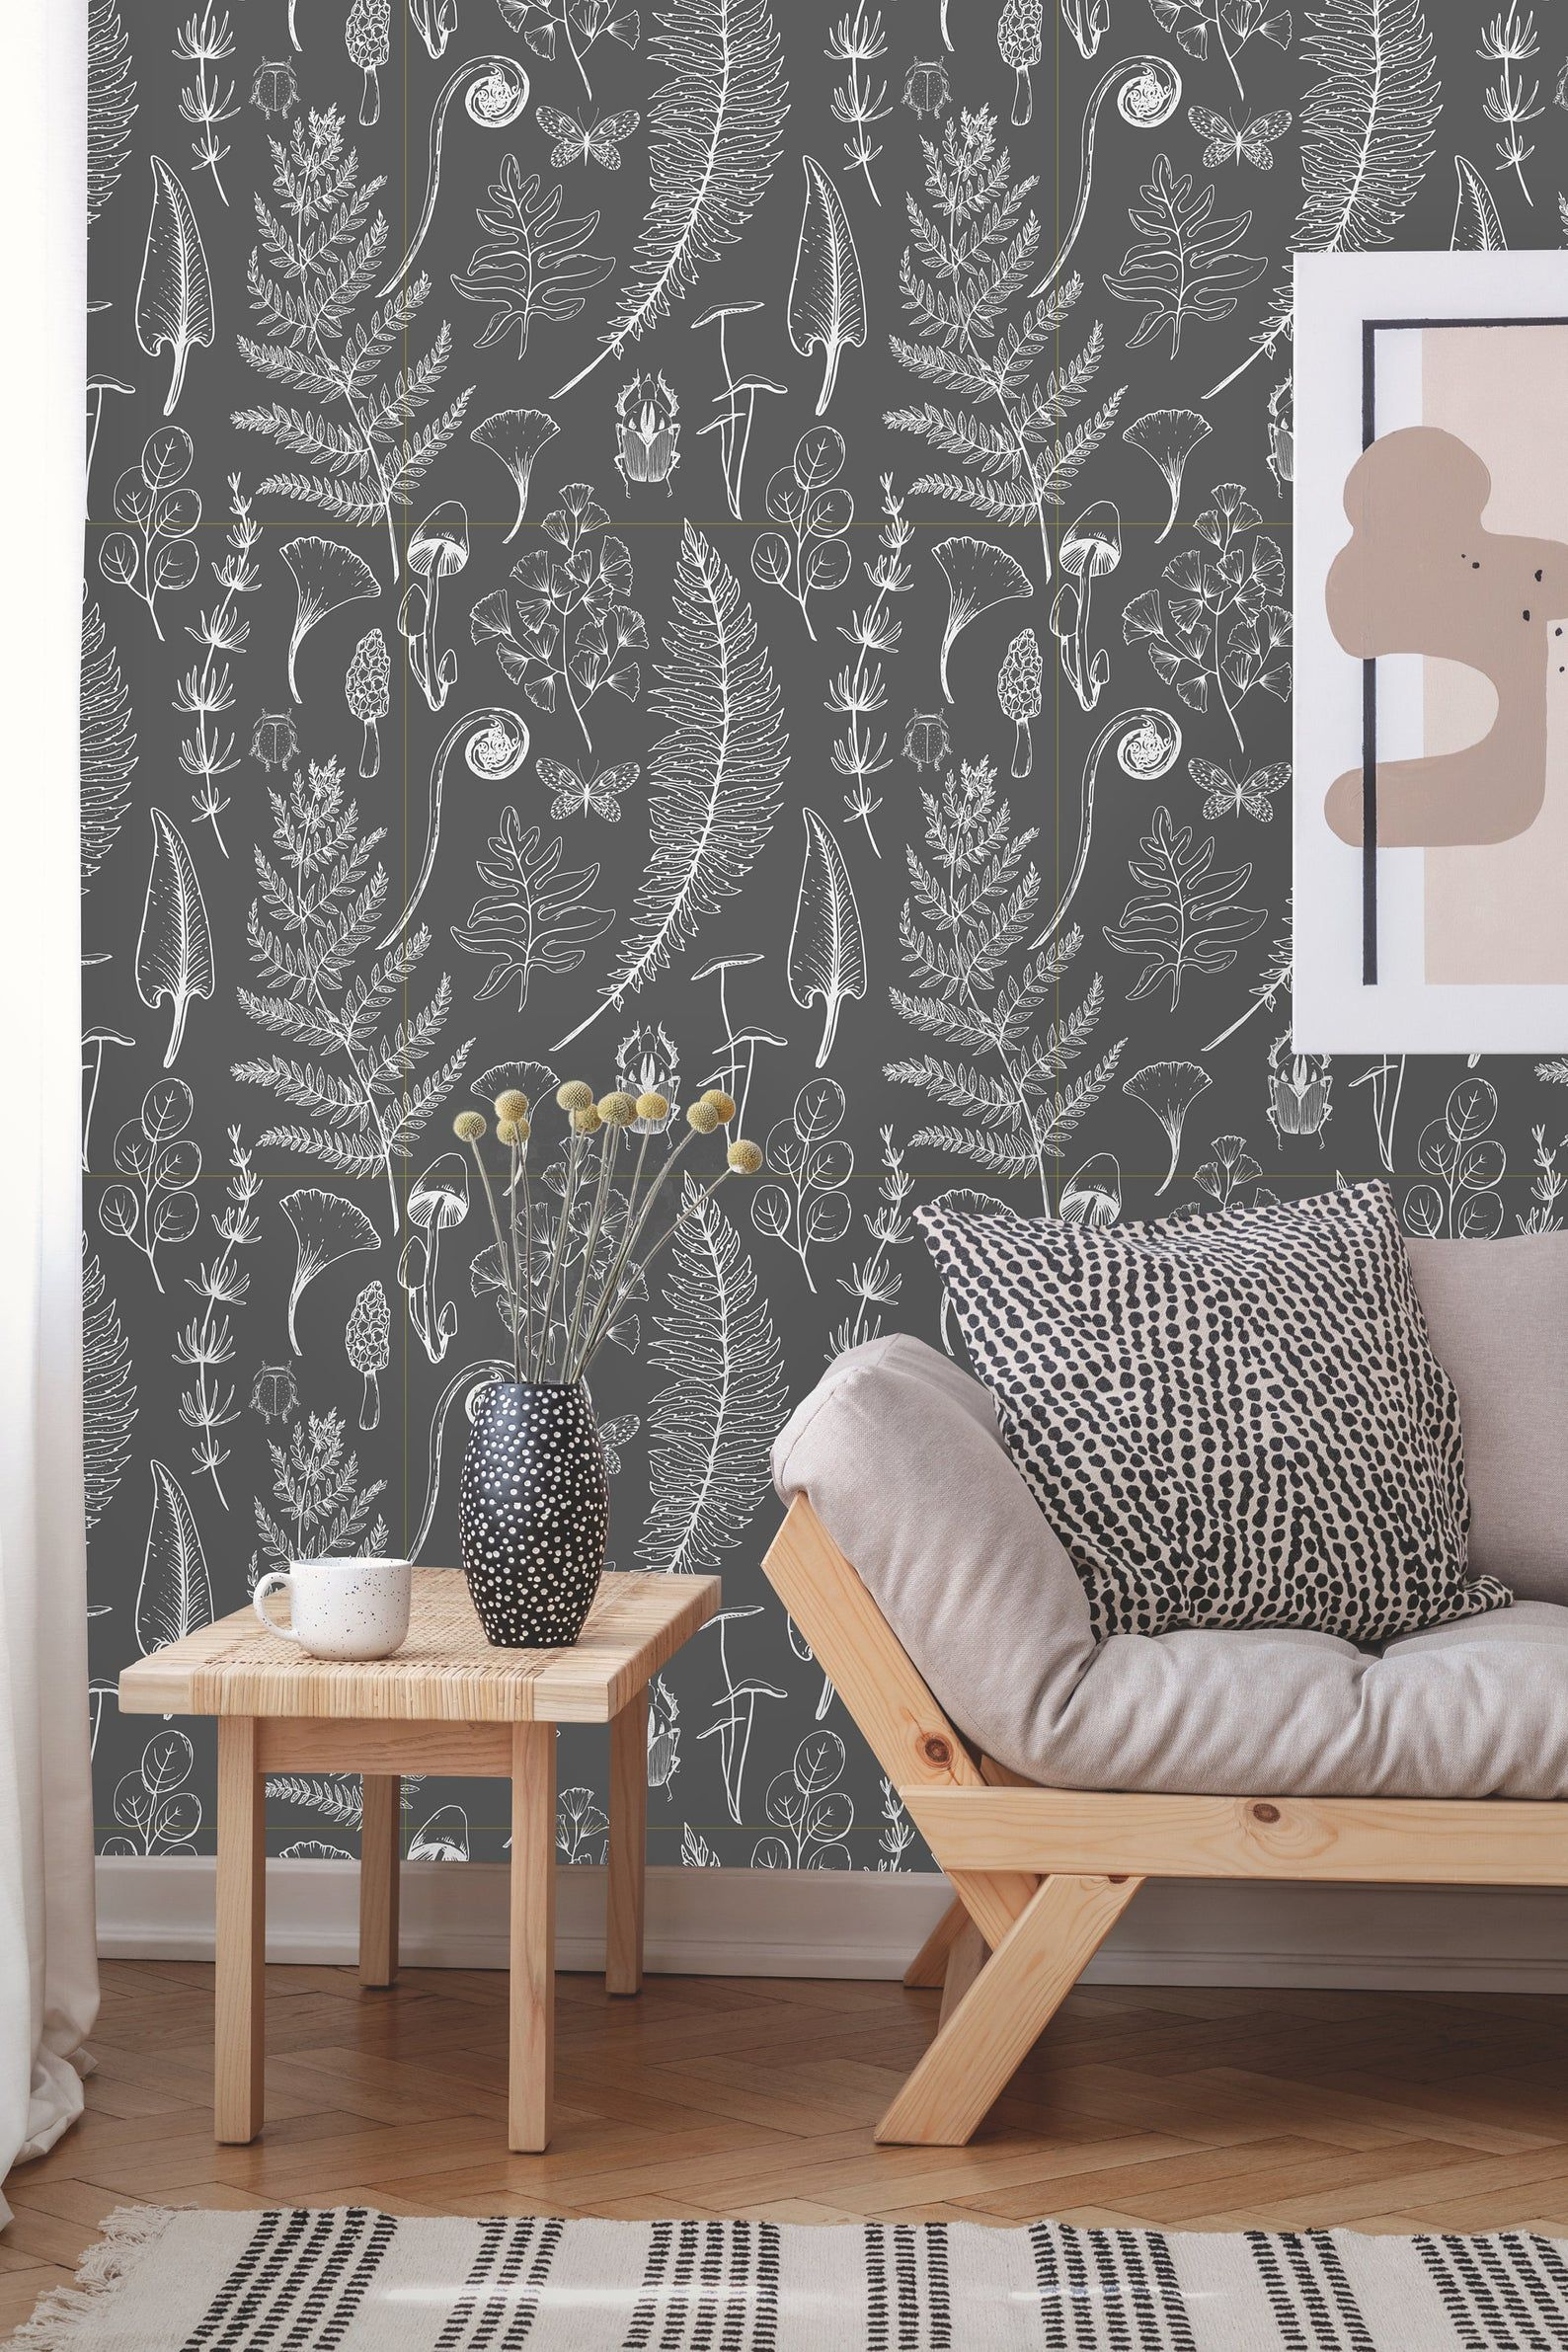 Removable Wallpaper Peel And Stick Floral Wallpaper Wallpaper